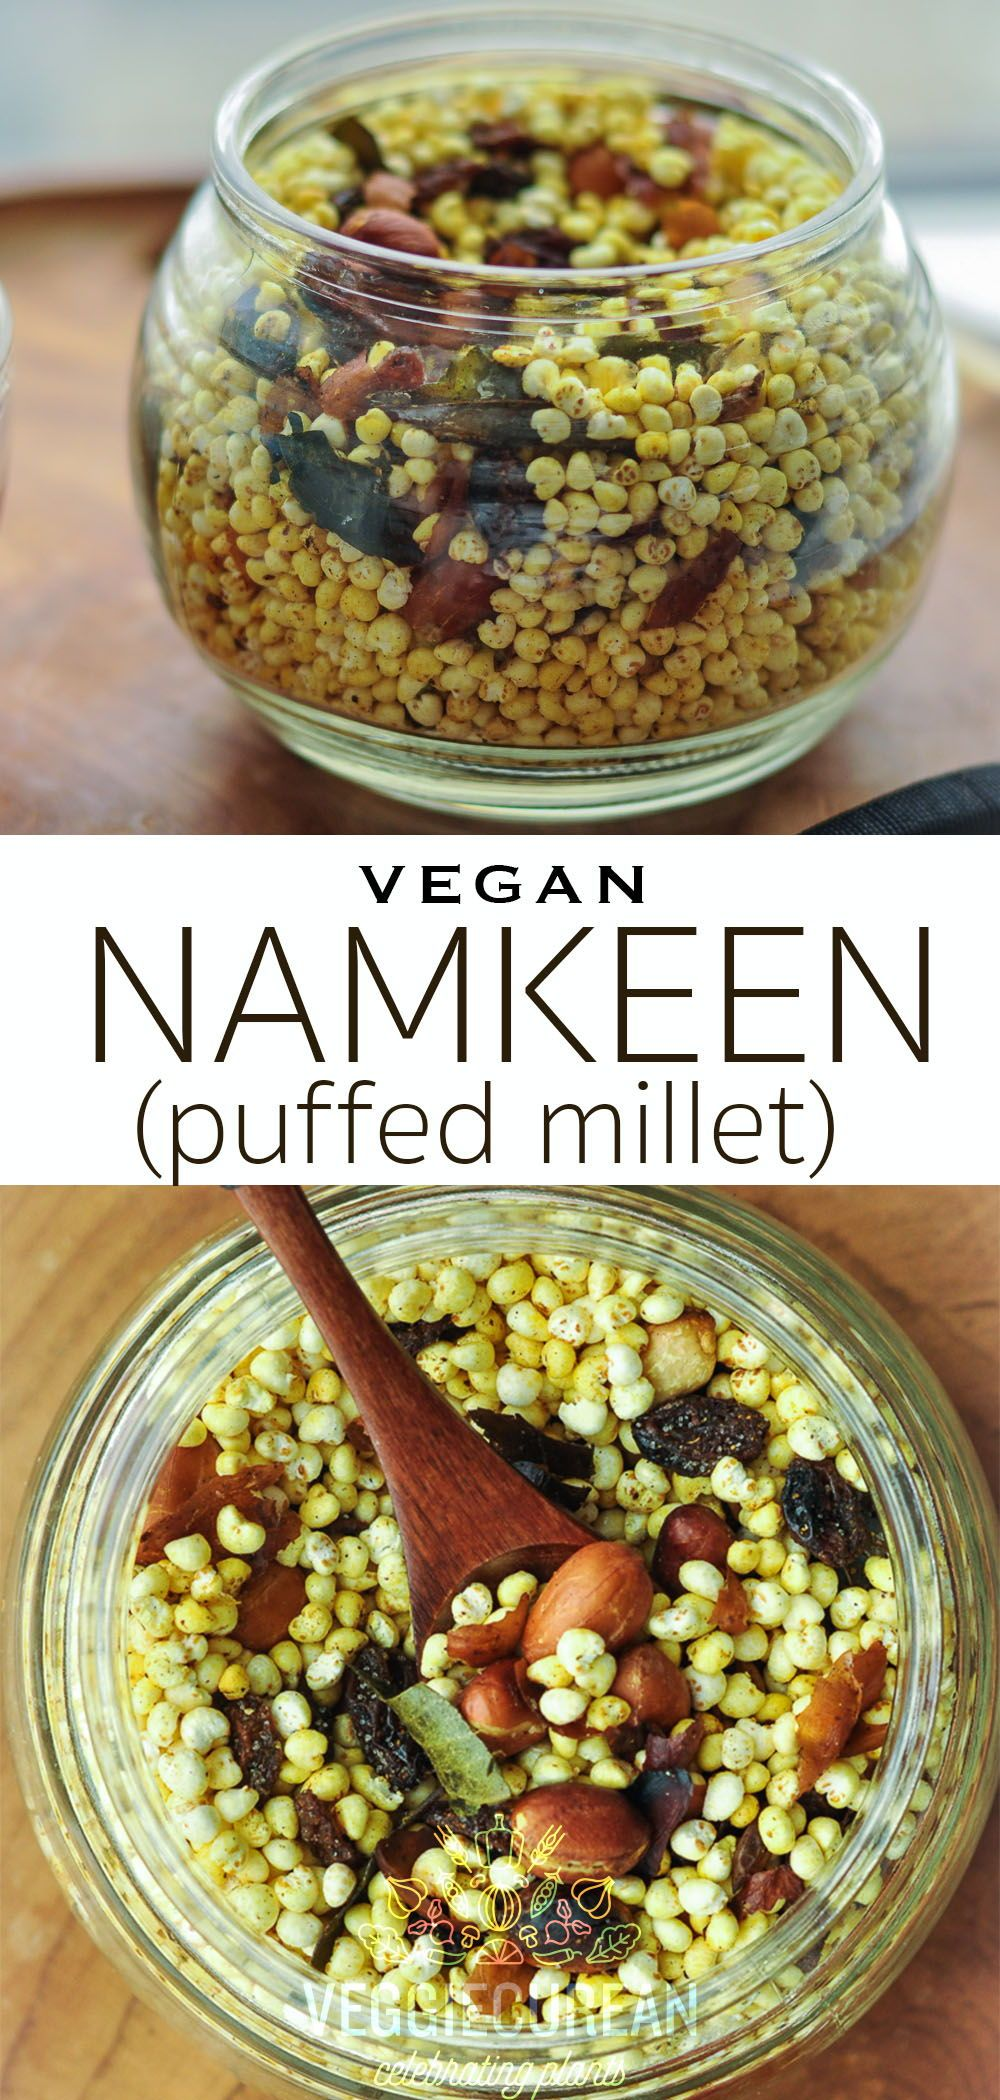 Namkeen (Puffed Millet) Recipe Vegan snacks, Vegan